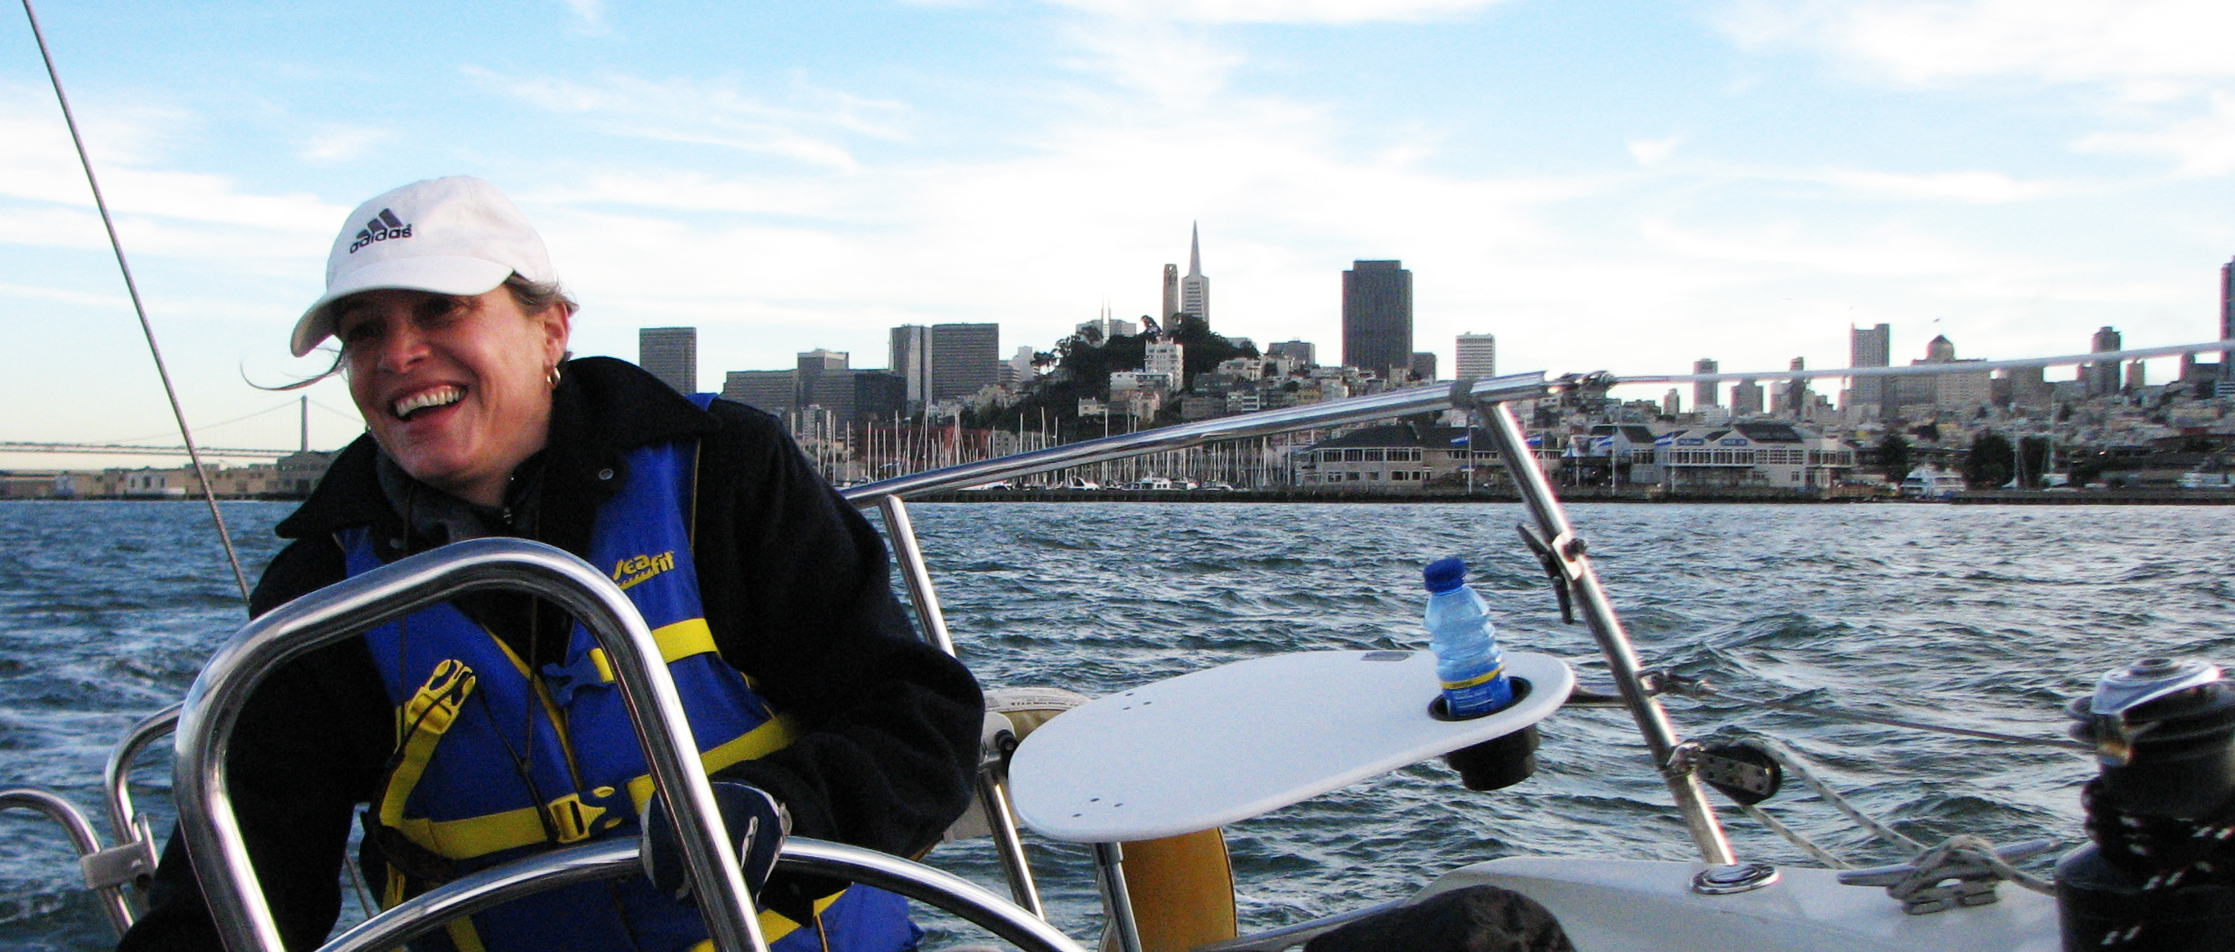 Sailing on the San Francisco Bay in an Introductory Sailing Course with Modern Sailing School & Club